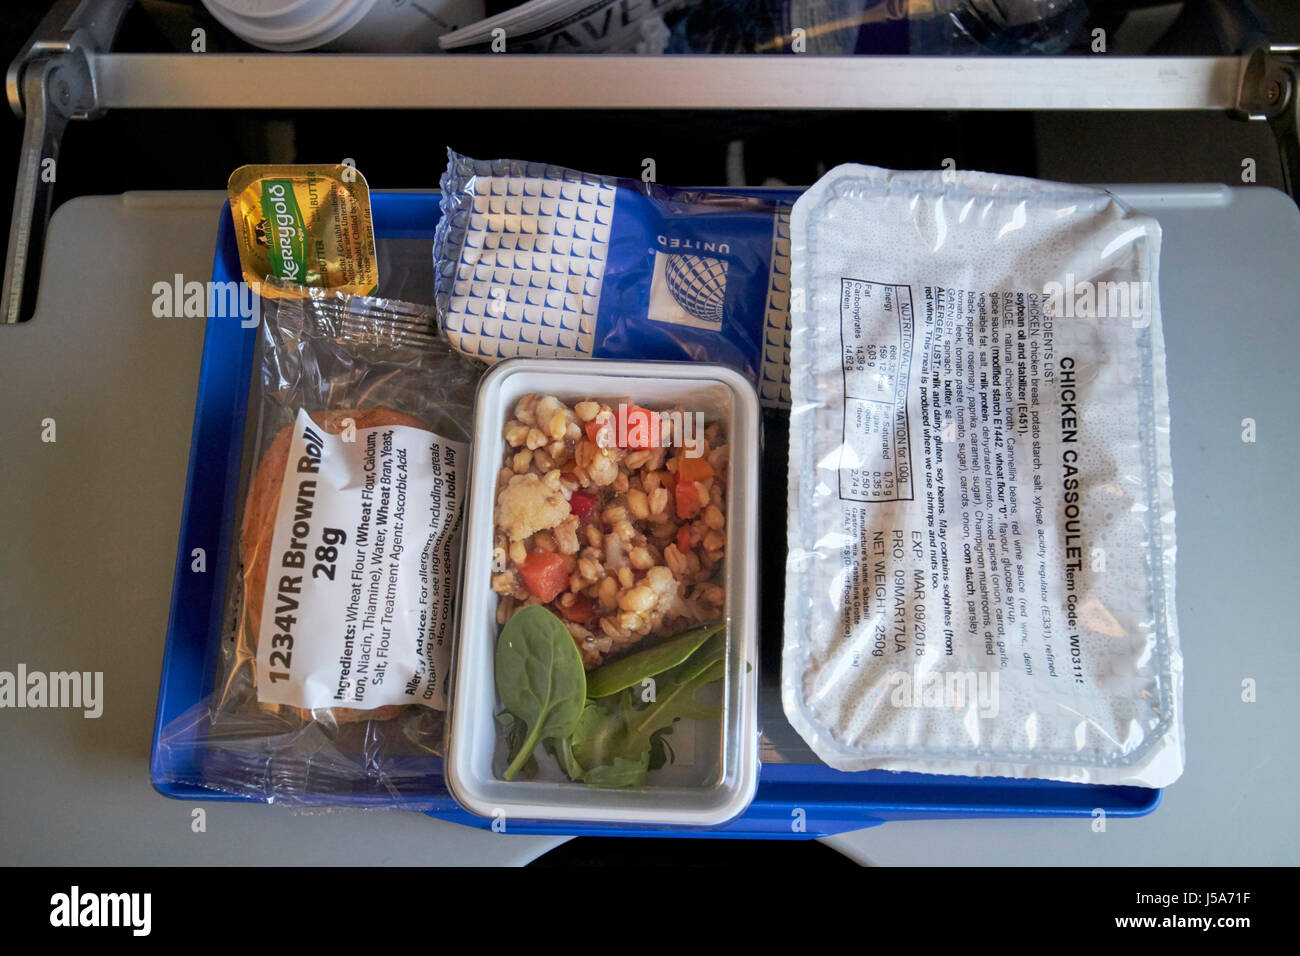 Thomson Inflight Meals >> Airline Food Catering Stock Photos Airline Food Catering Stock